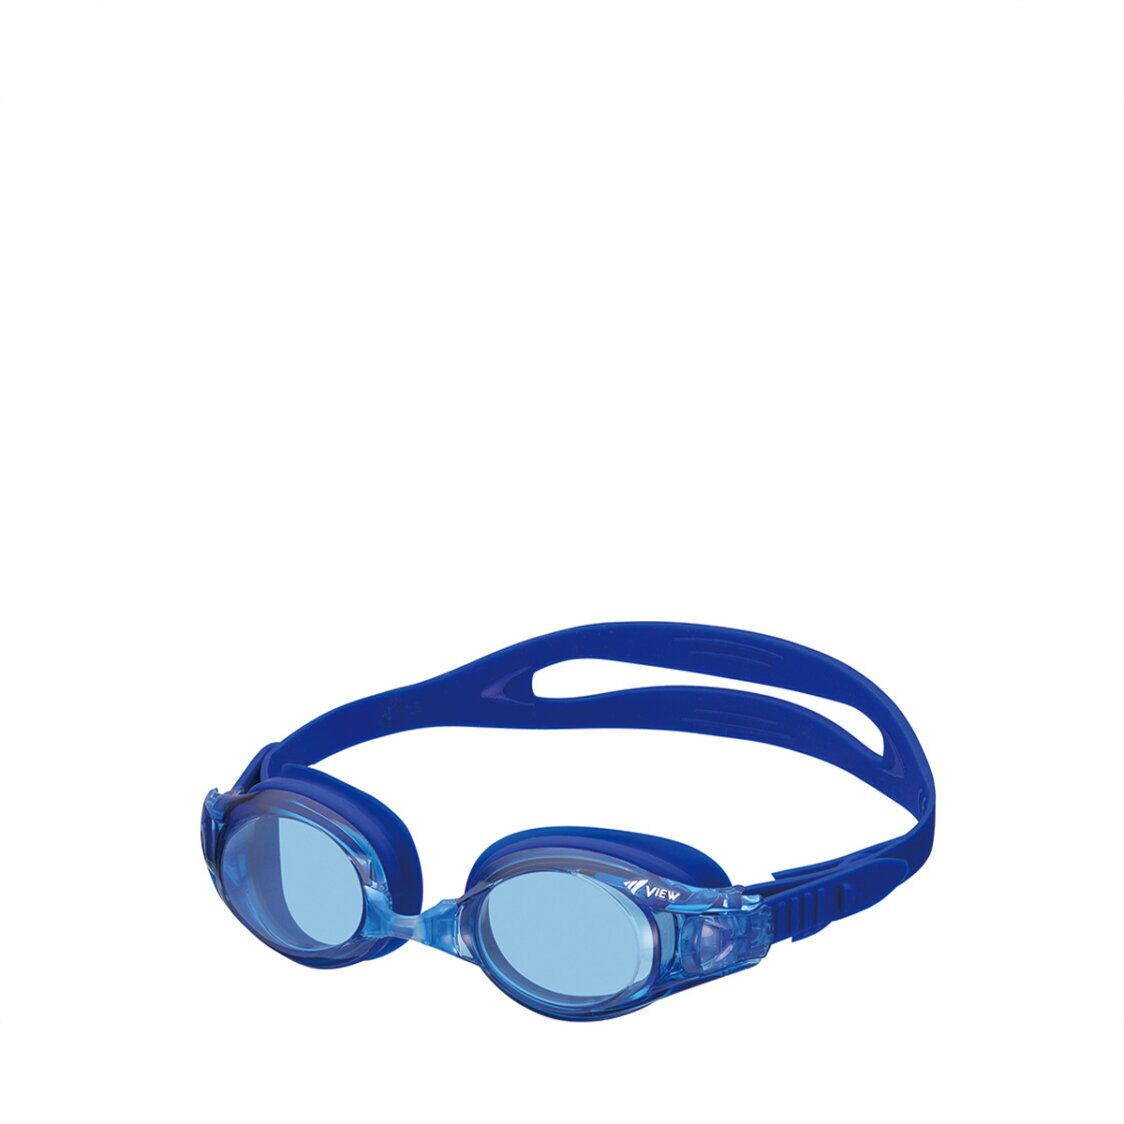 View Adult Goggle Blue AAV550A